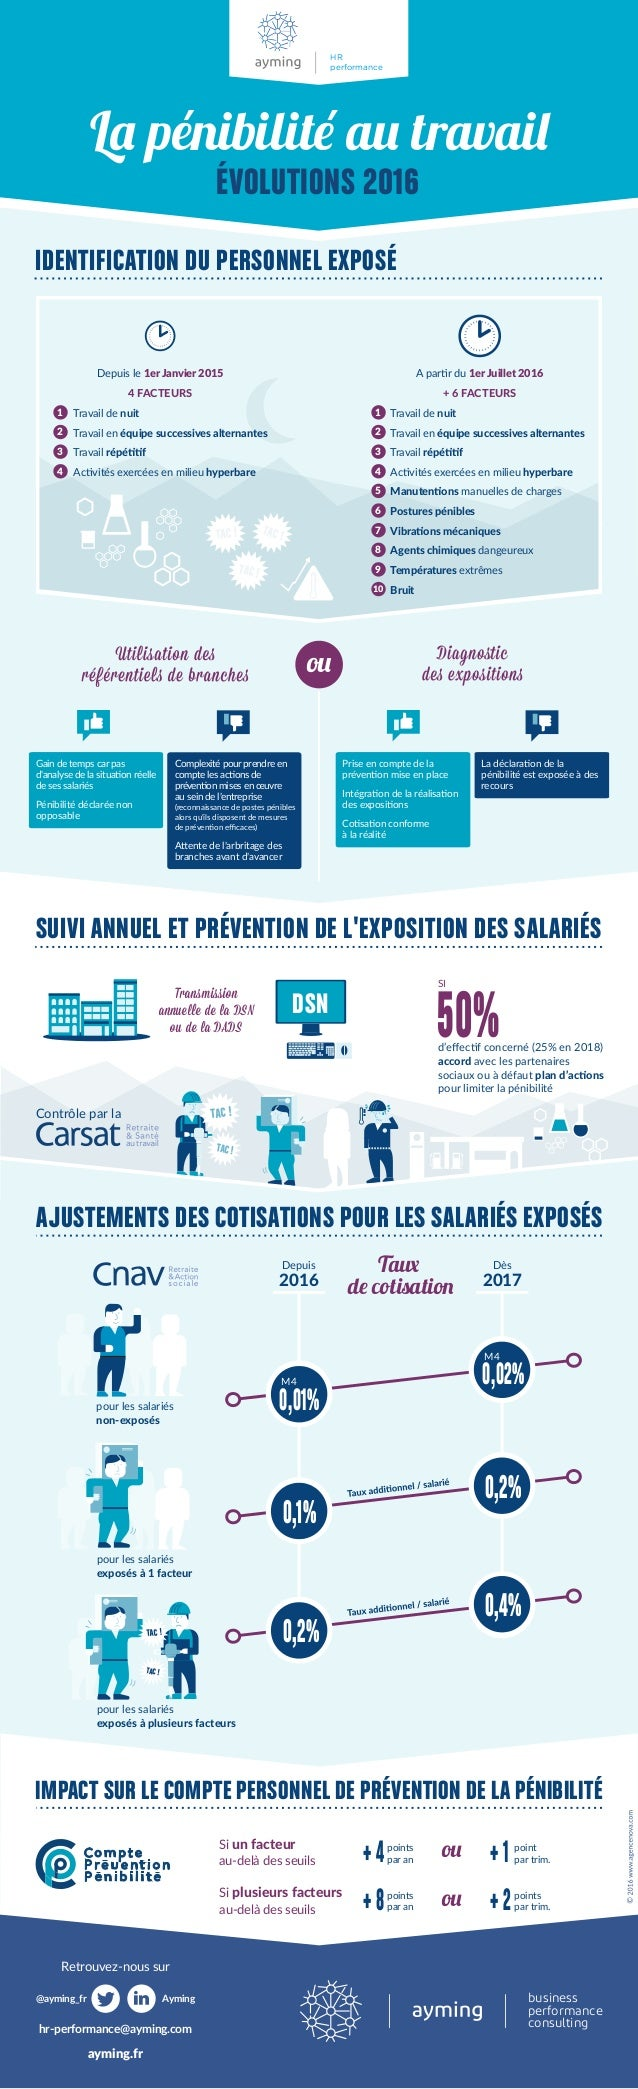 business performance consulting ayming.fr Retrouvez-nous sur hr-performance@ayming.com Ayming@ayming_fr IDENTIFICATION DU ...